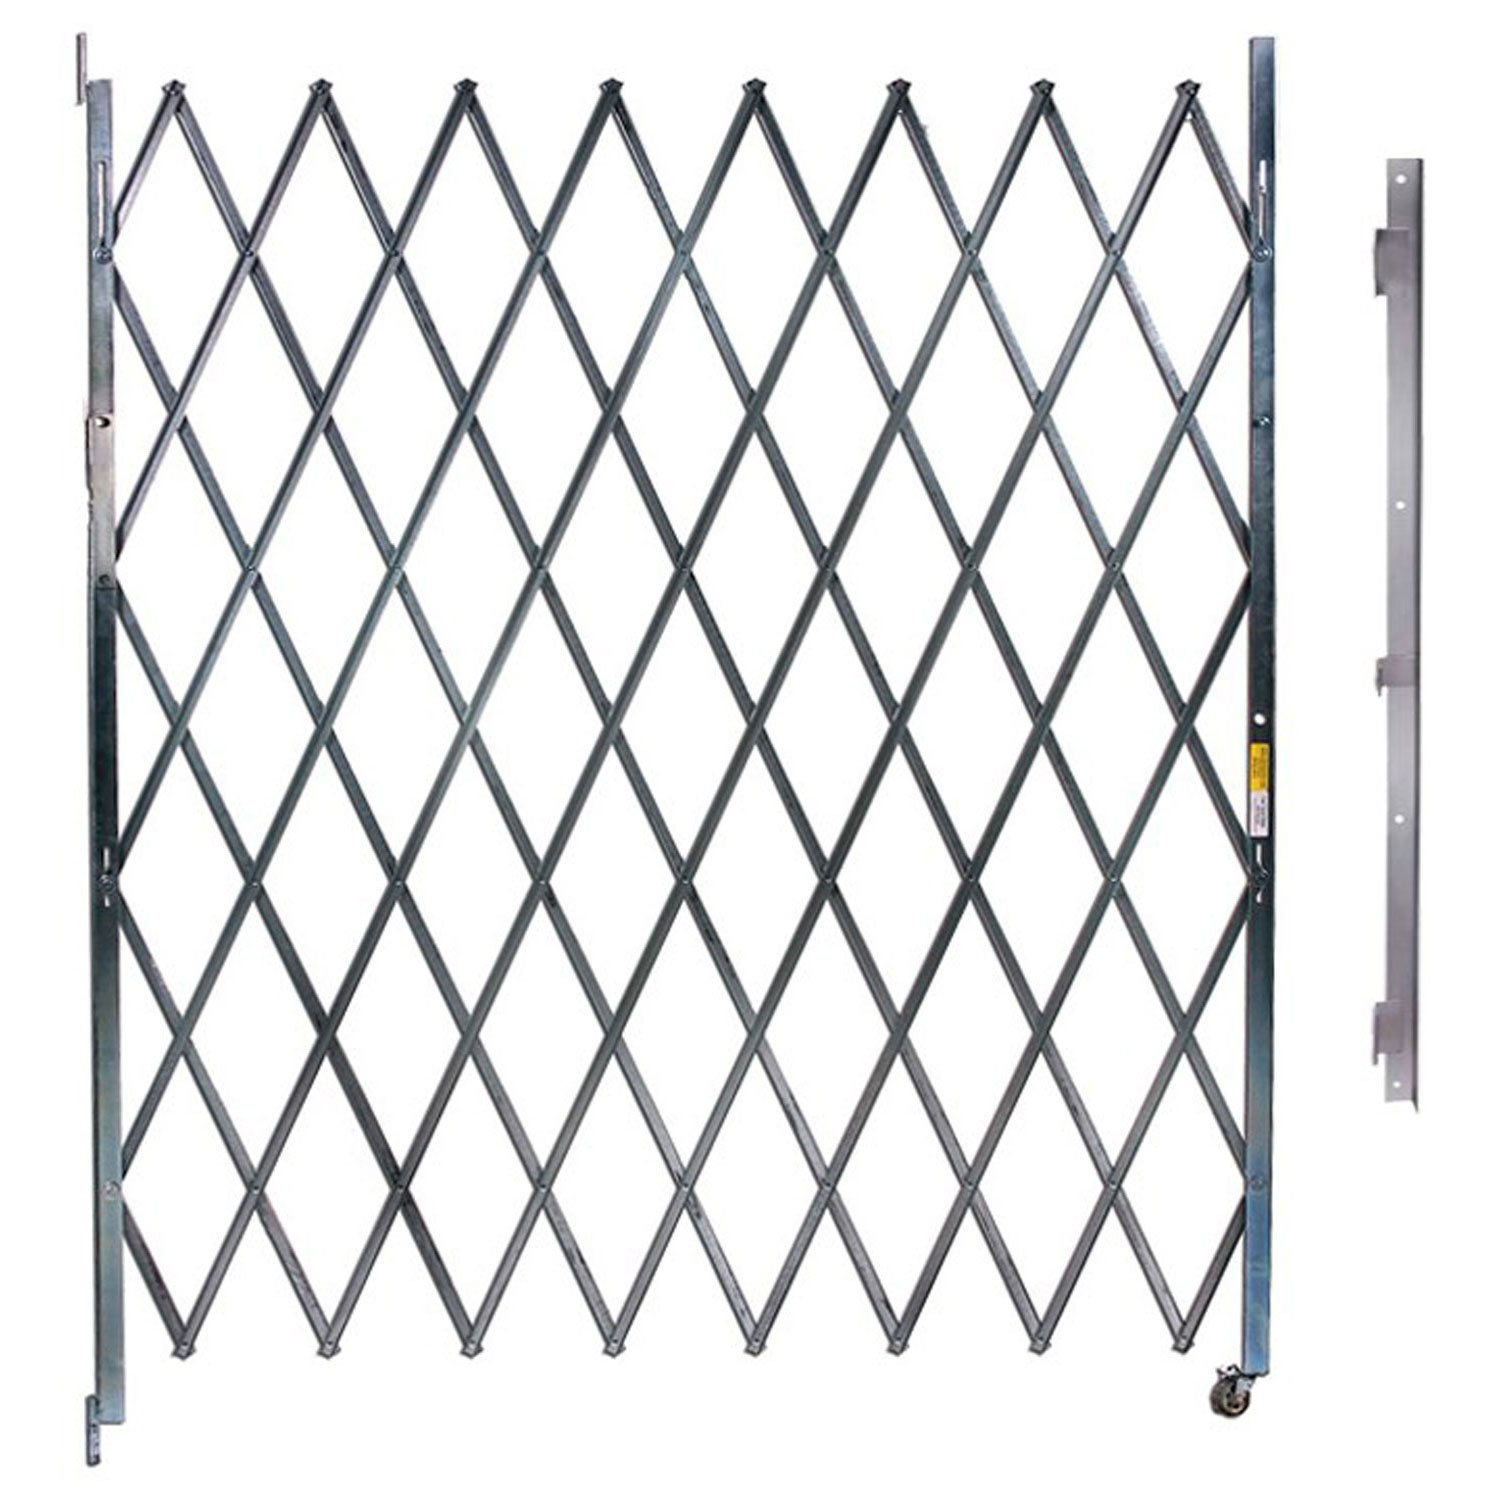 Single Folding Gate, 3'W to 4'W and 6'H by Illinois Engineered Products